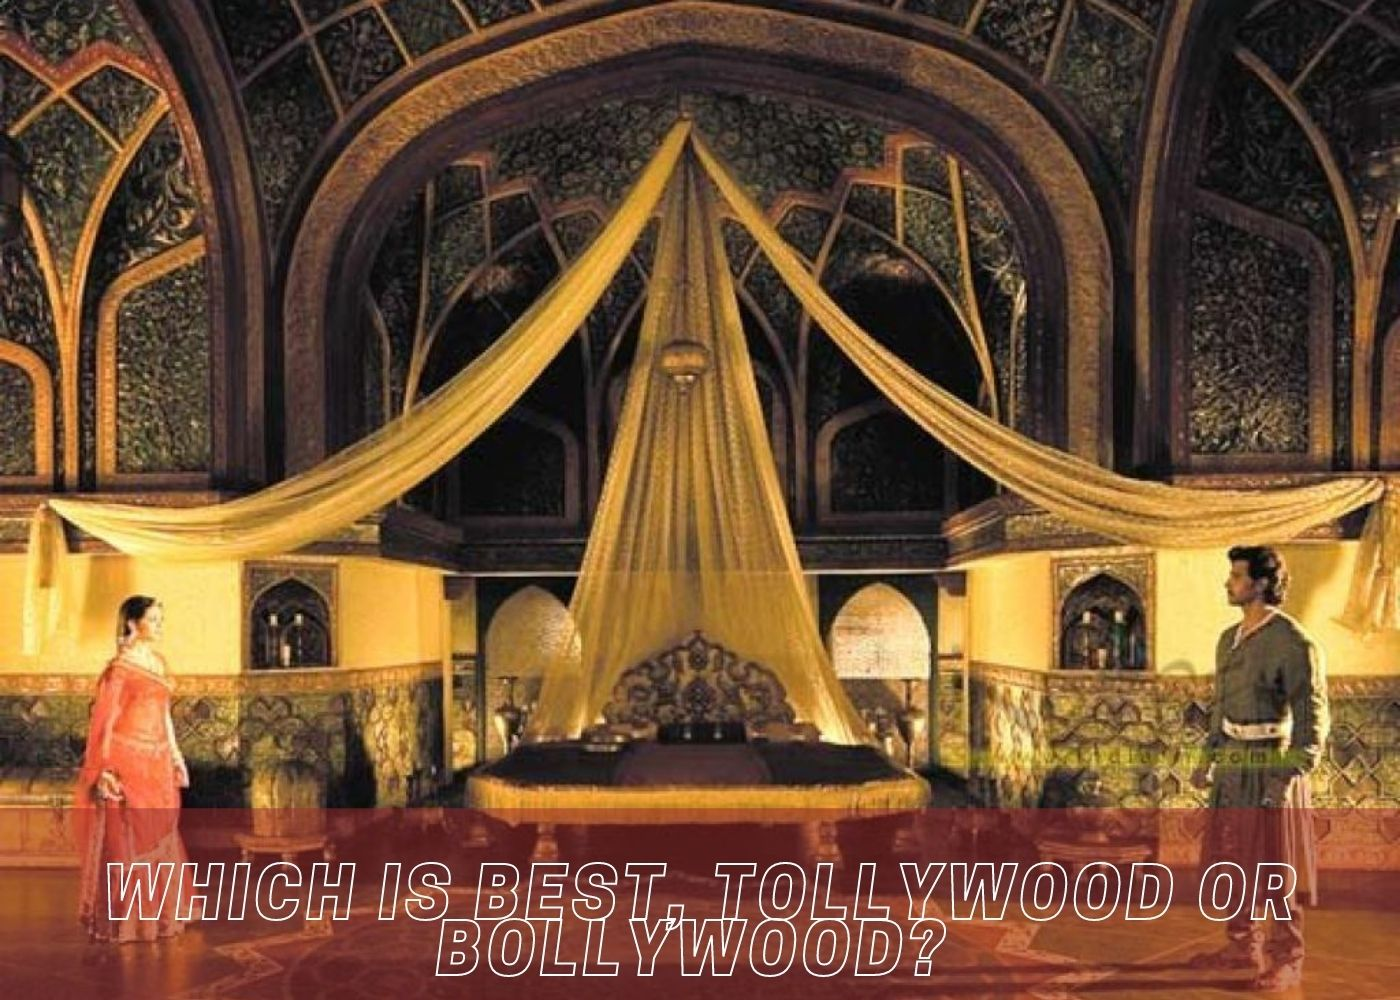 Which is best, Tollywood or Bollywood?